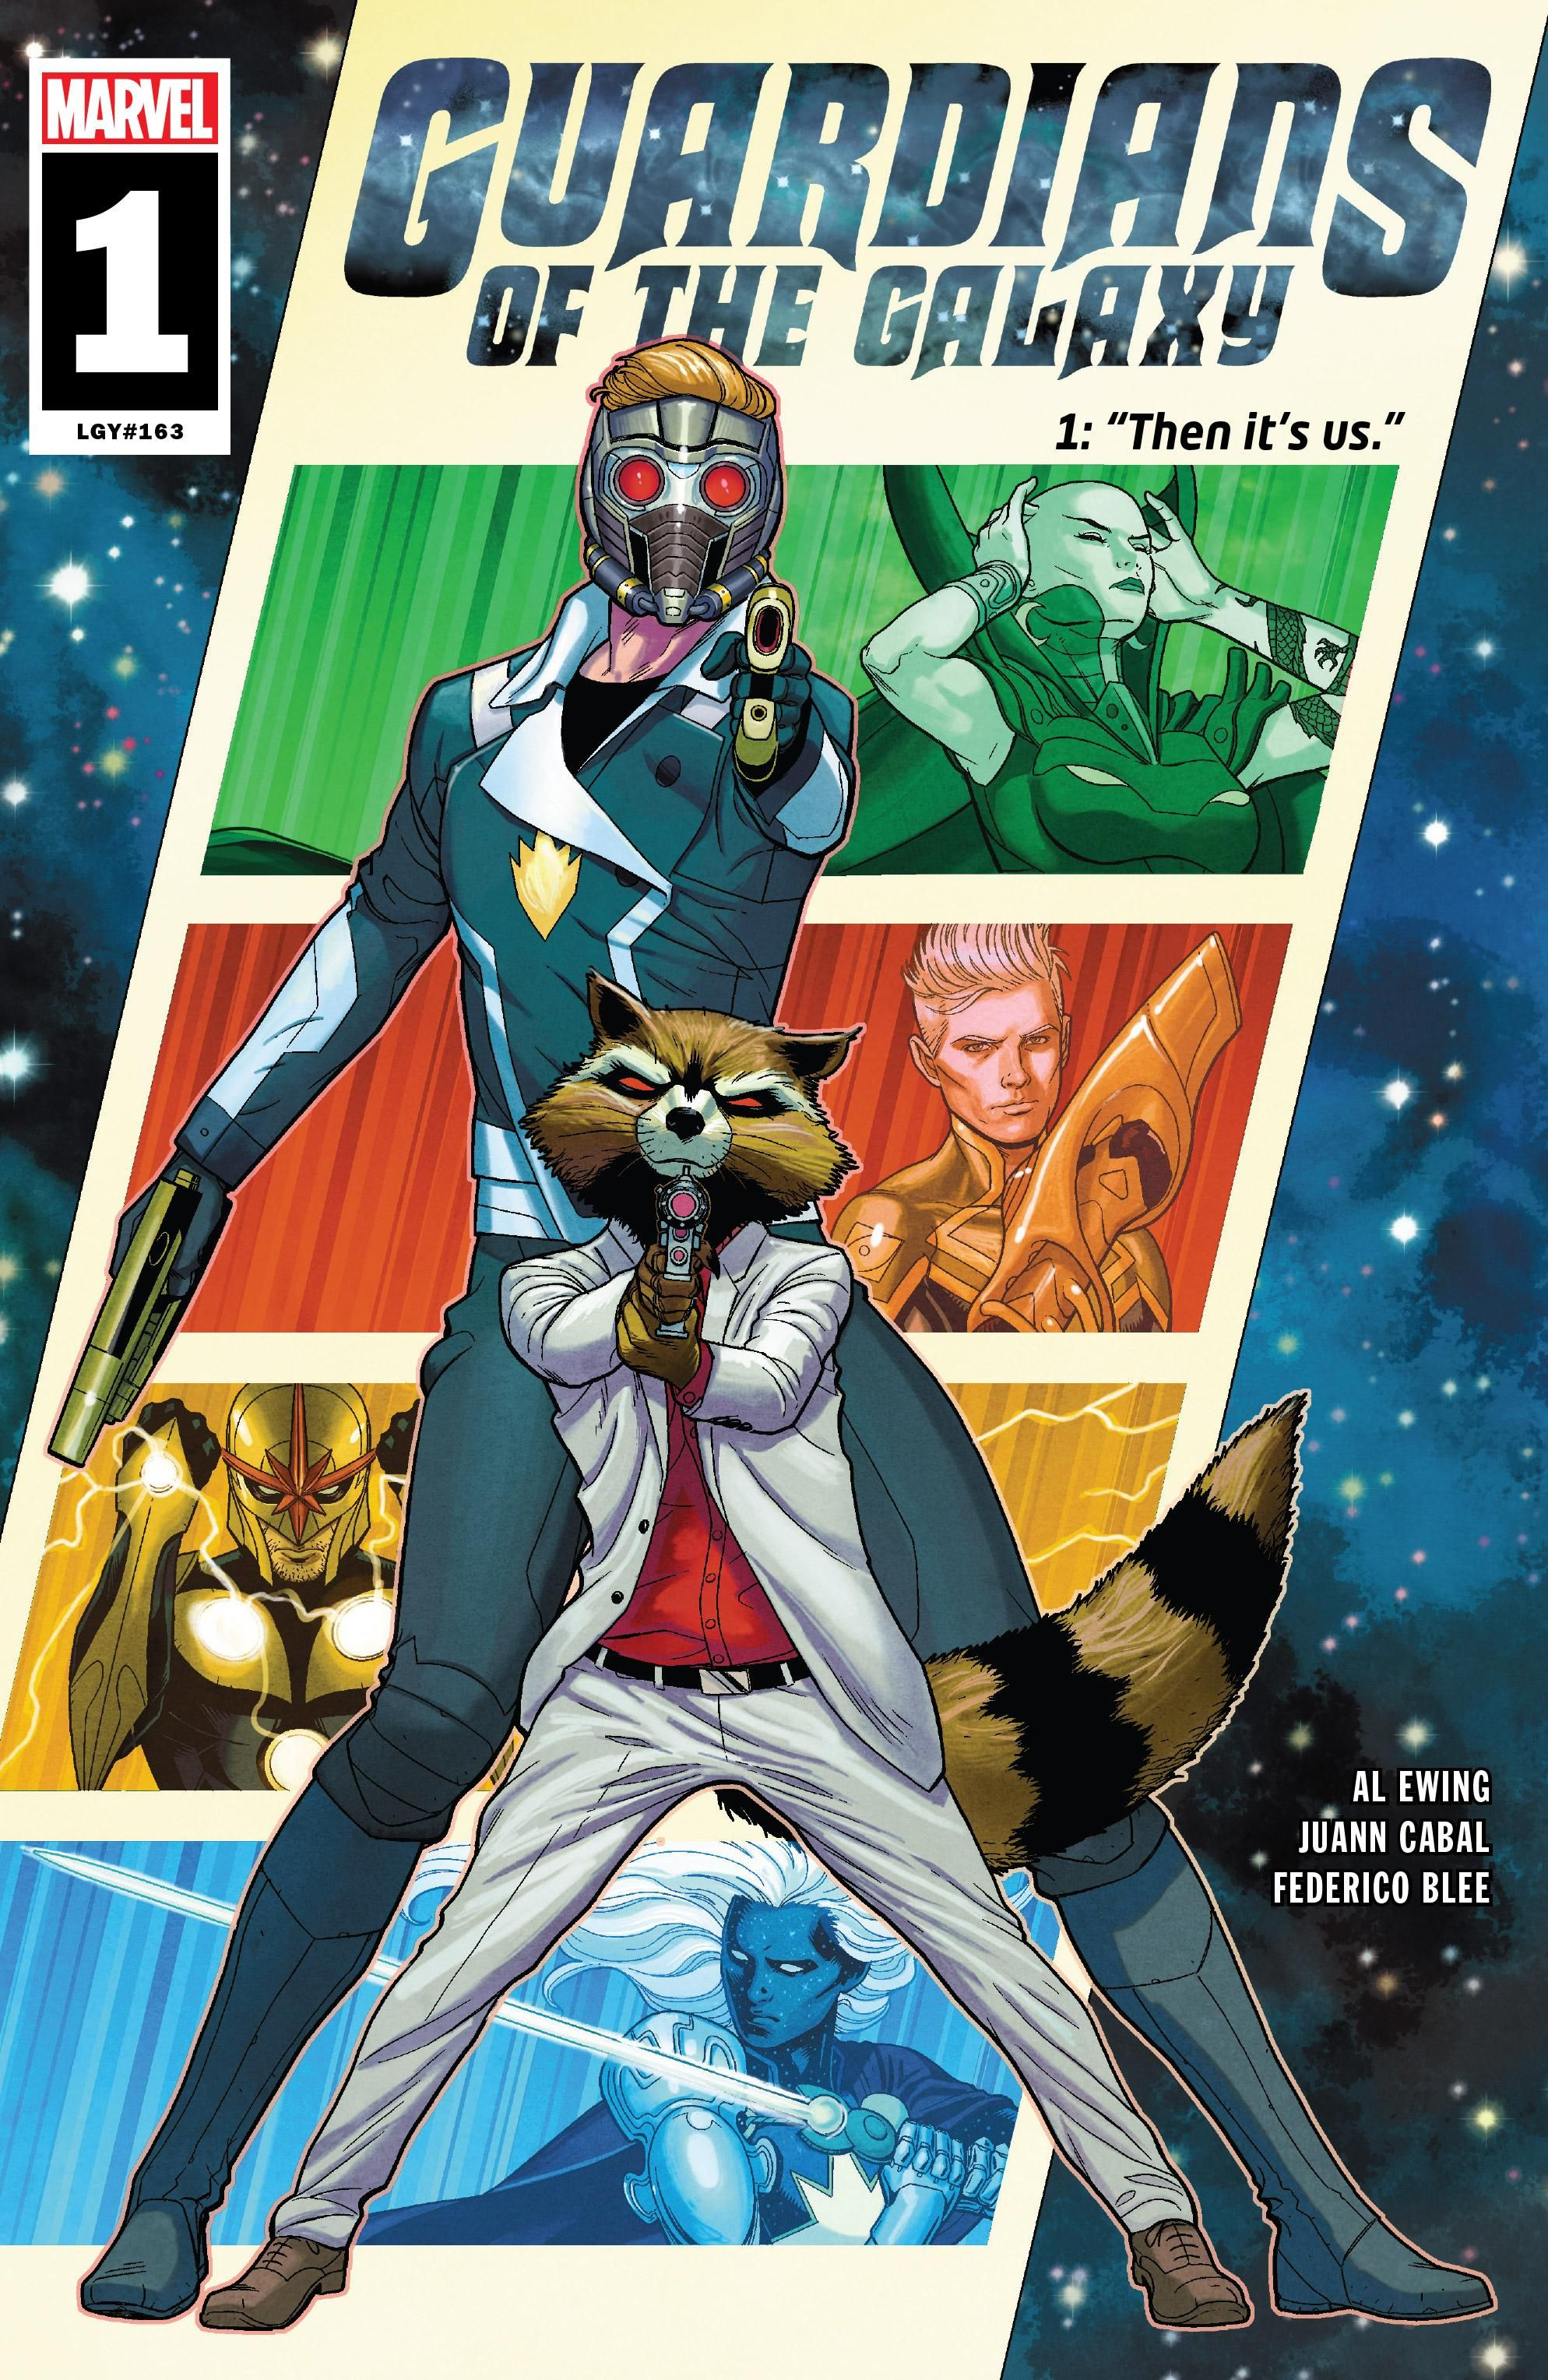 Rocket Raccoon wears a suit now, and he looks great